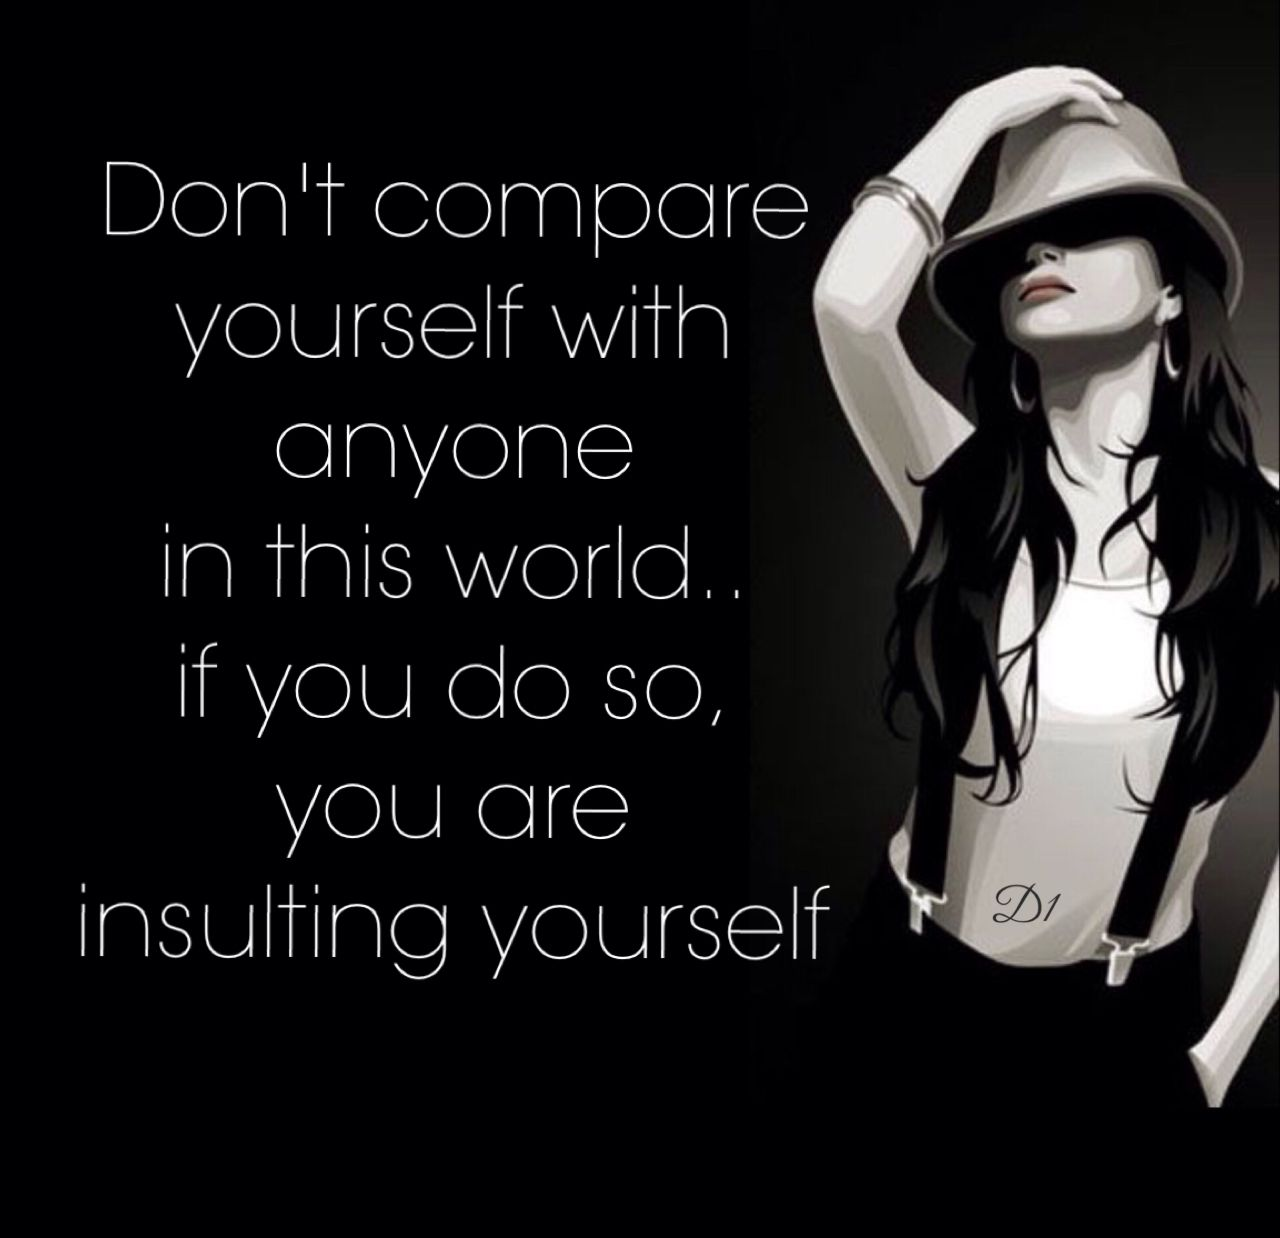 Don T Compare Yourself With Anyone In This World If You Do So You Are Insulting Yourself Dont Compare Wisdom Quotes Funny Quotes